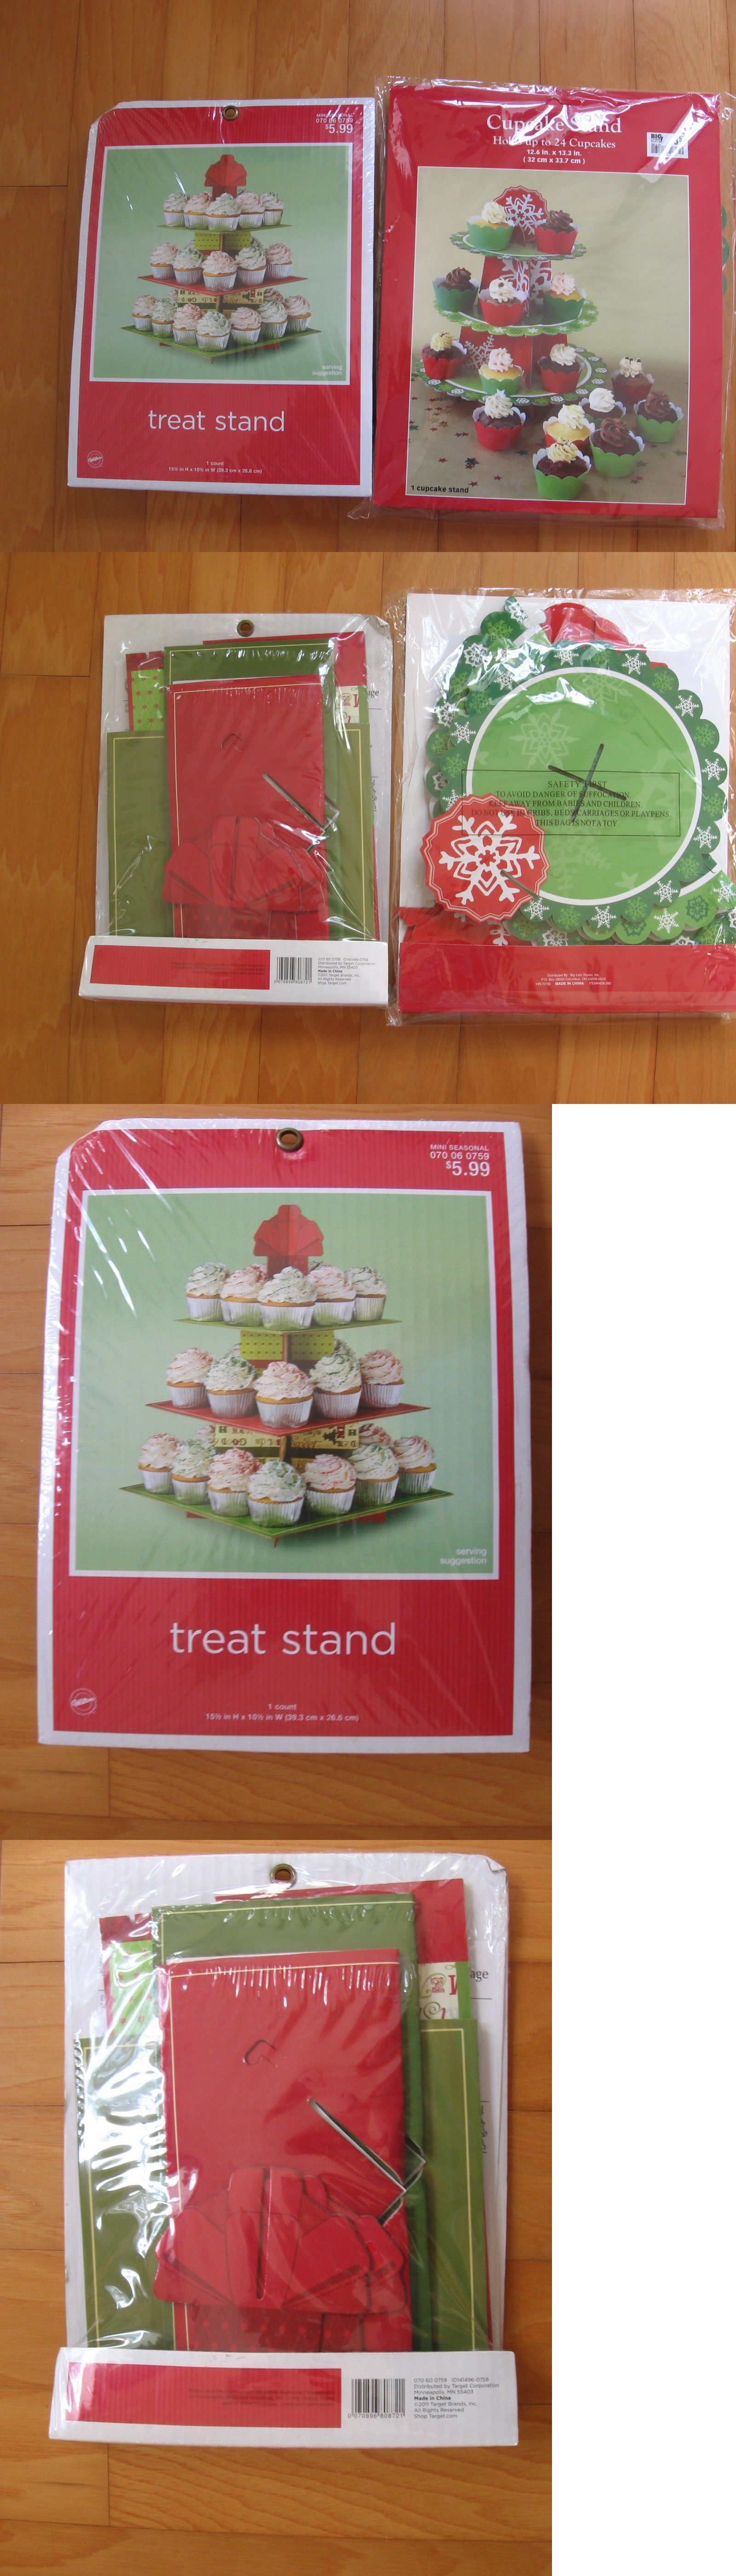 Cake Stands 183356 Wilton Christmas Holiday 3 Tier 24 Cupcake Treat Cake Stand Cardboard Lot Of 2 Buy It No Cardboard Cake Stand Christmas Holidays Holiday